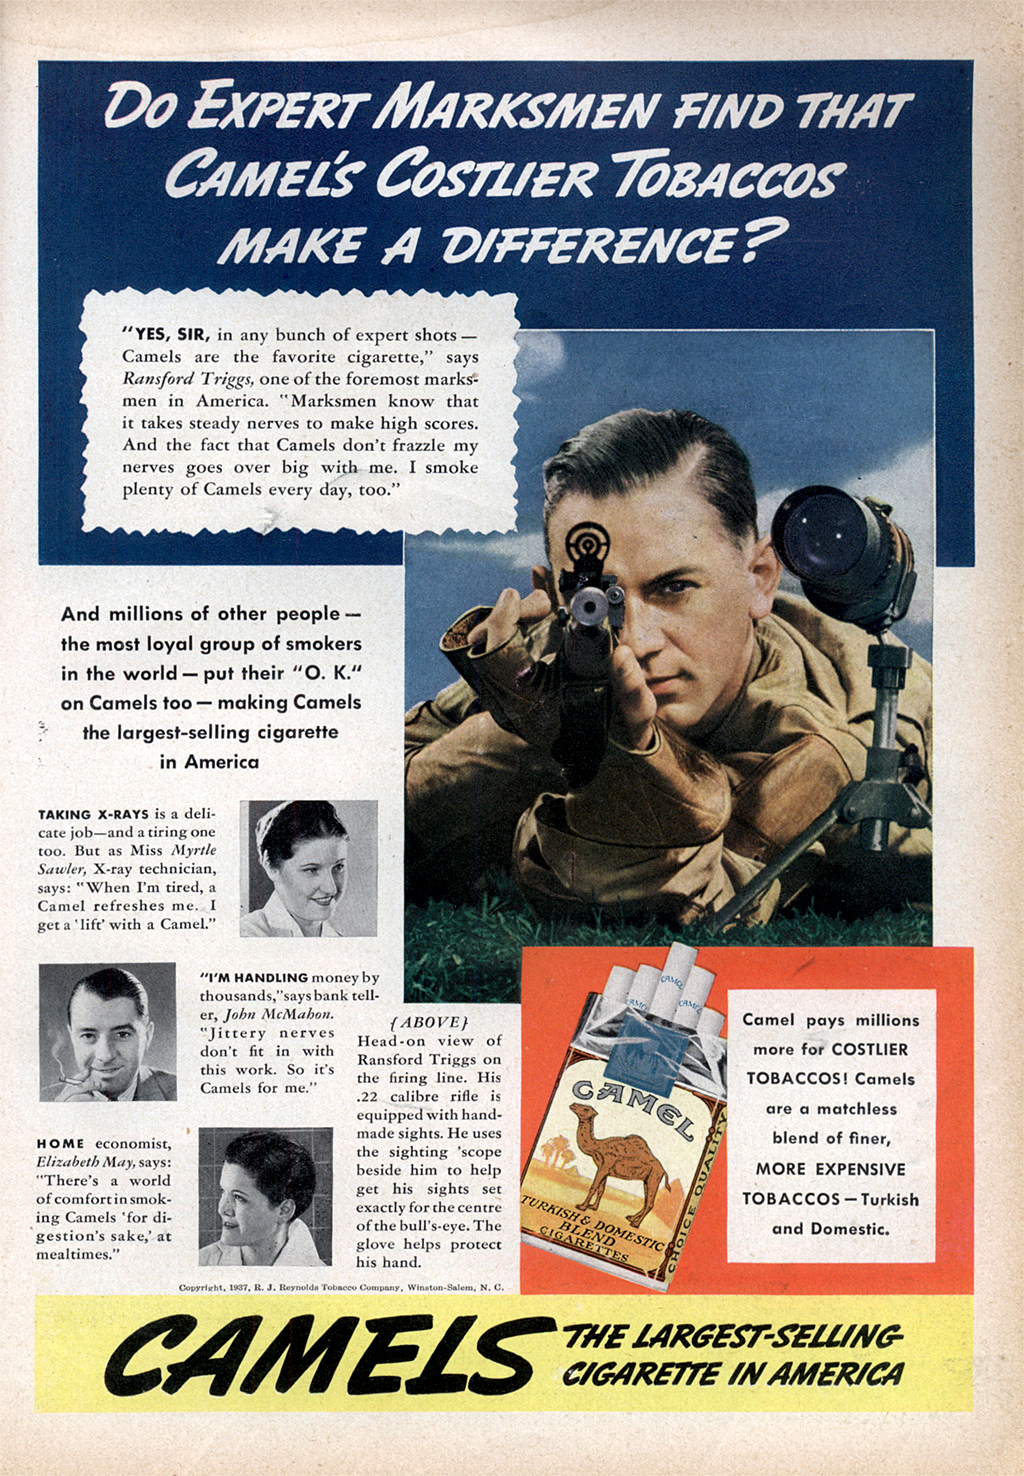 Smoke Camel Cigarettes, Become a Better Marksman. 1937 Ad